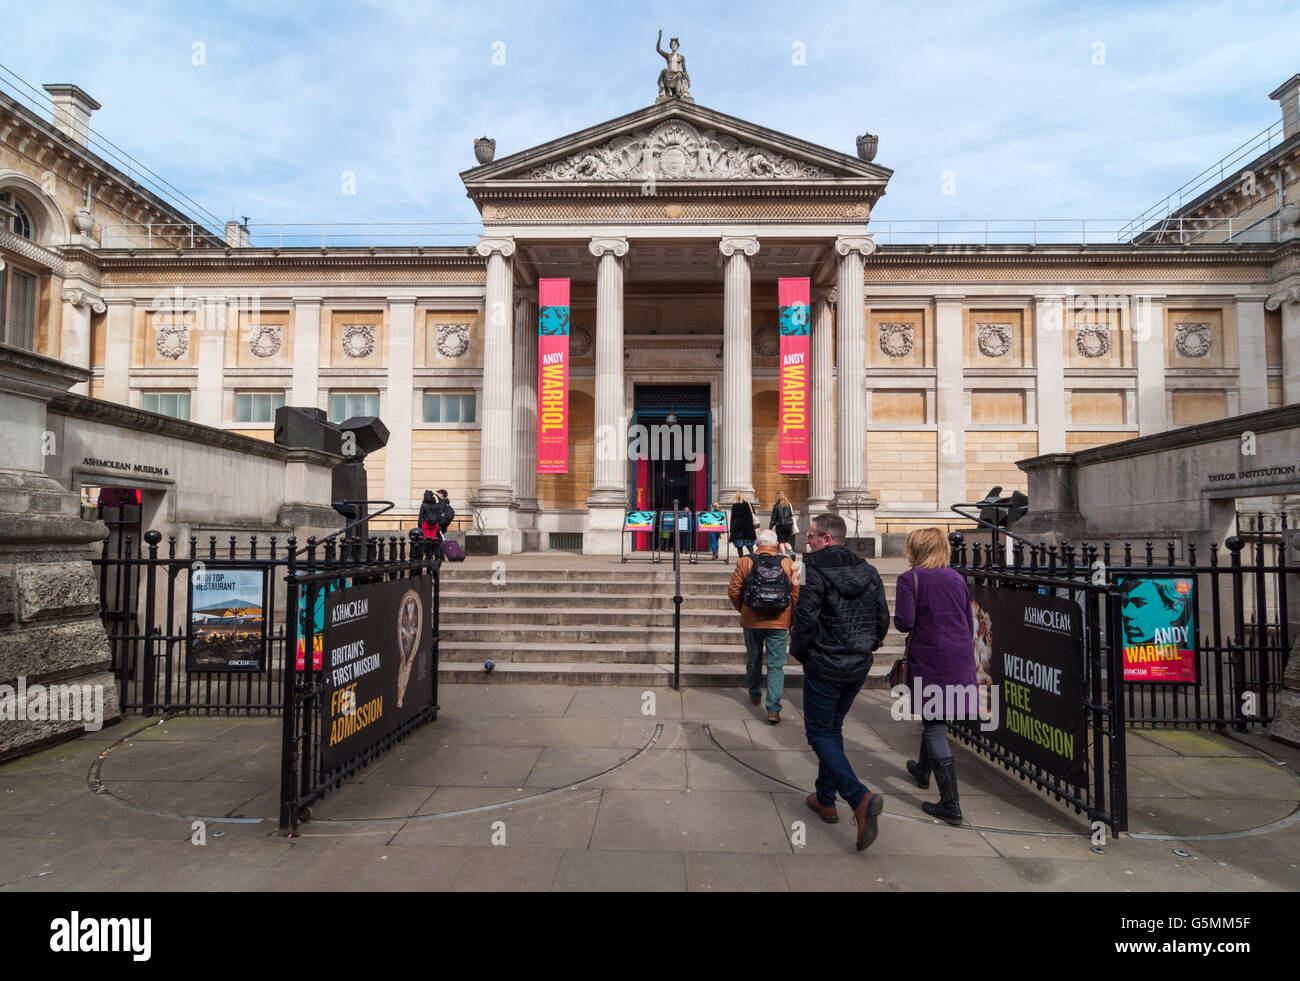 front-entrance-of-the-ashmolean-museum-oxford-united-kingdom-G5MM5F.jpg